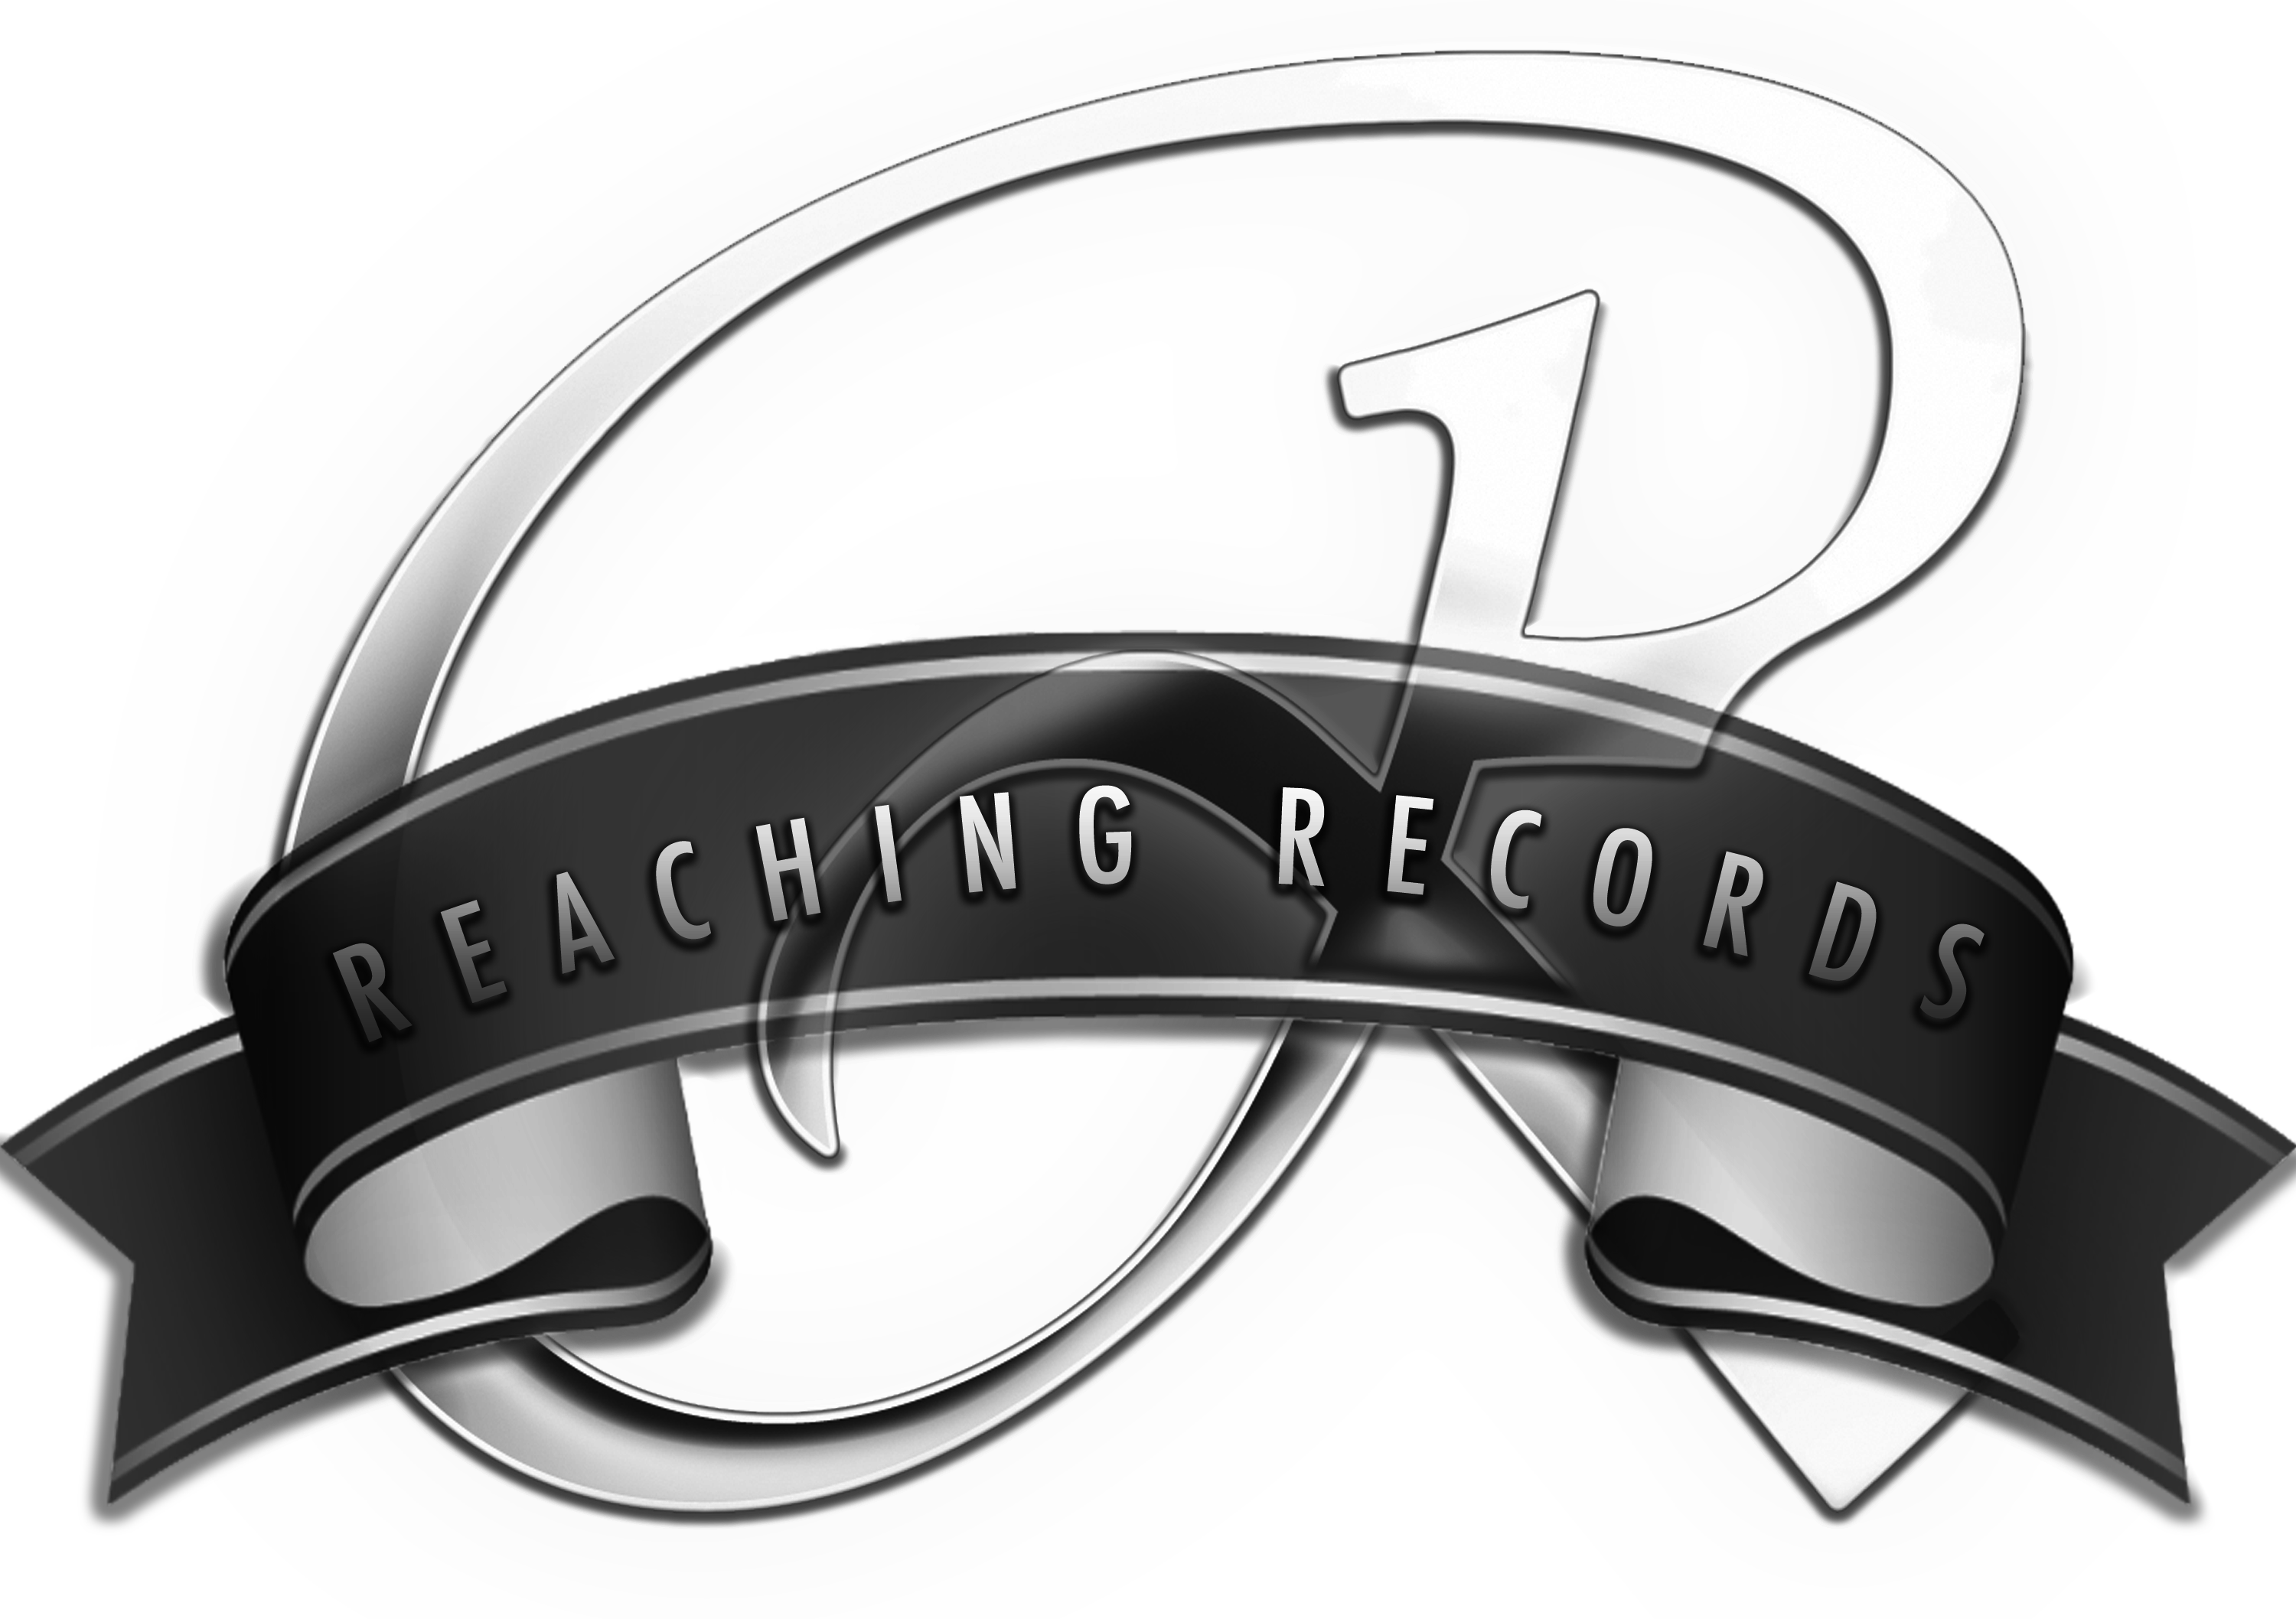 Reaching Records